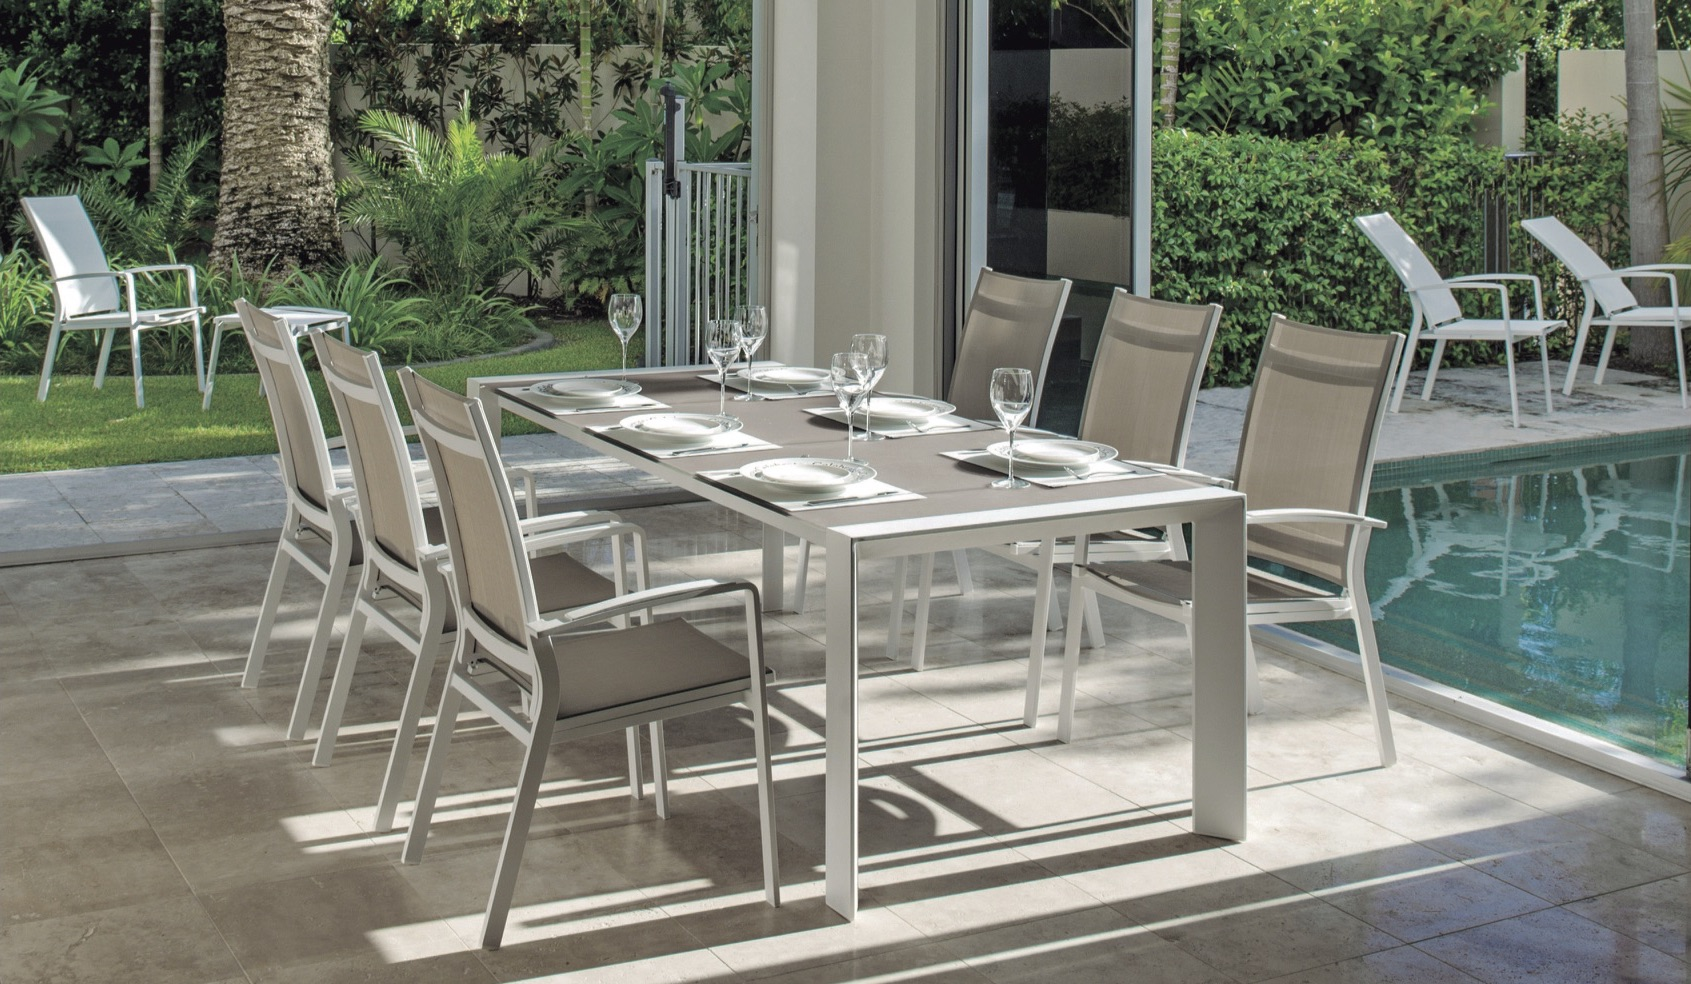 Alchemy Dining Table Modern Glass Extendable Teak All Weather Batyline  Aluminum Contract Hospitality Outdoor Furniture 2